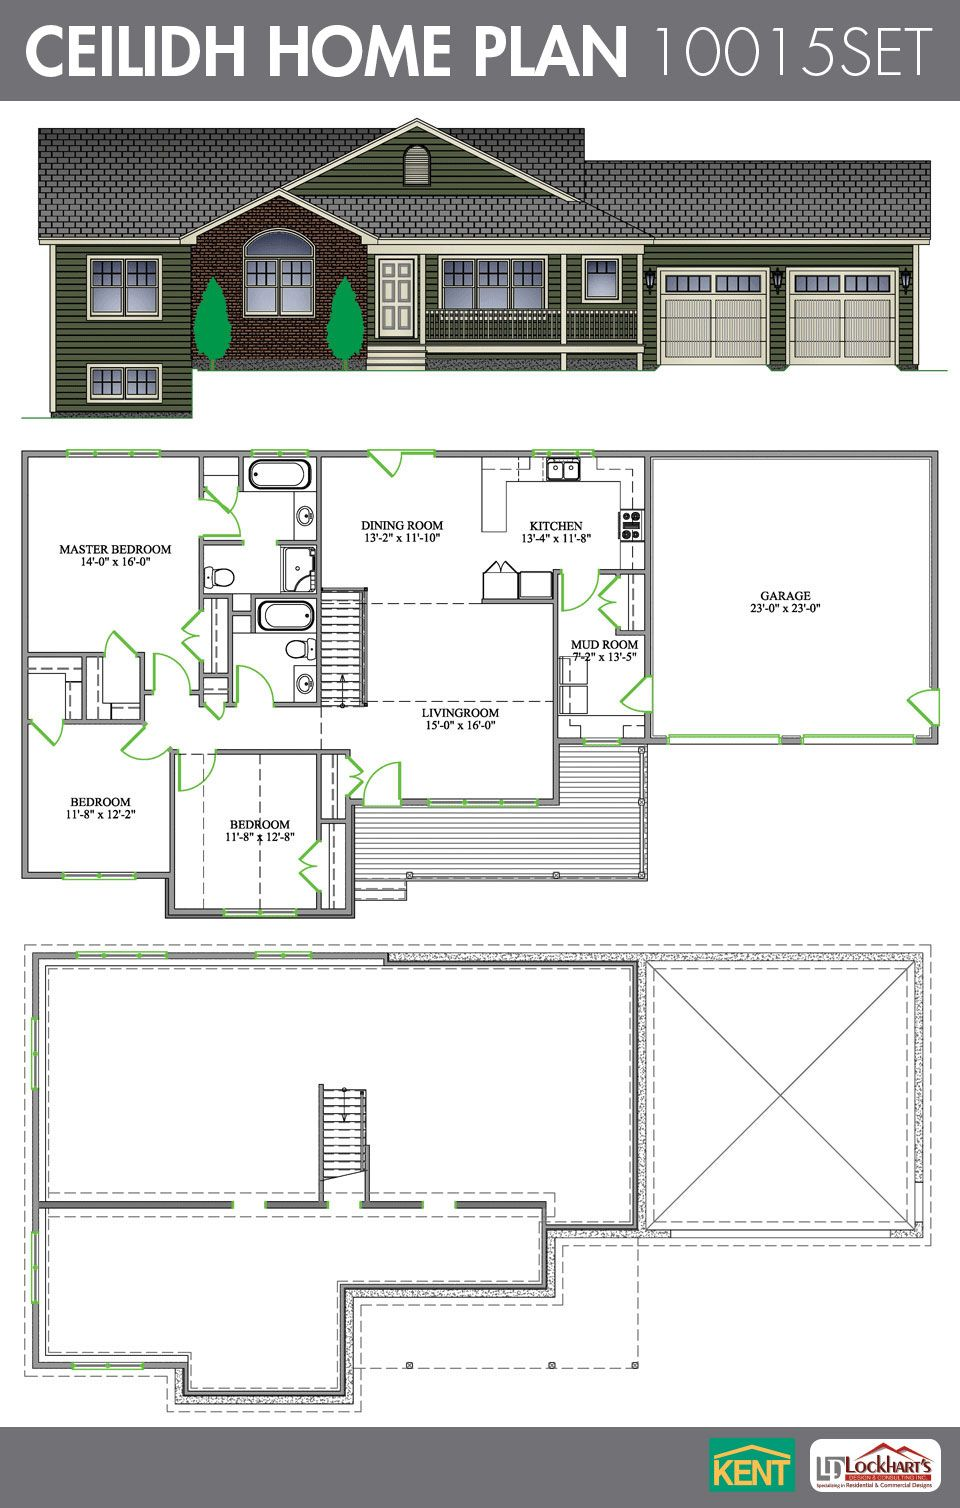 céilidh 3 bedroom 2 bathroom home plan features large master